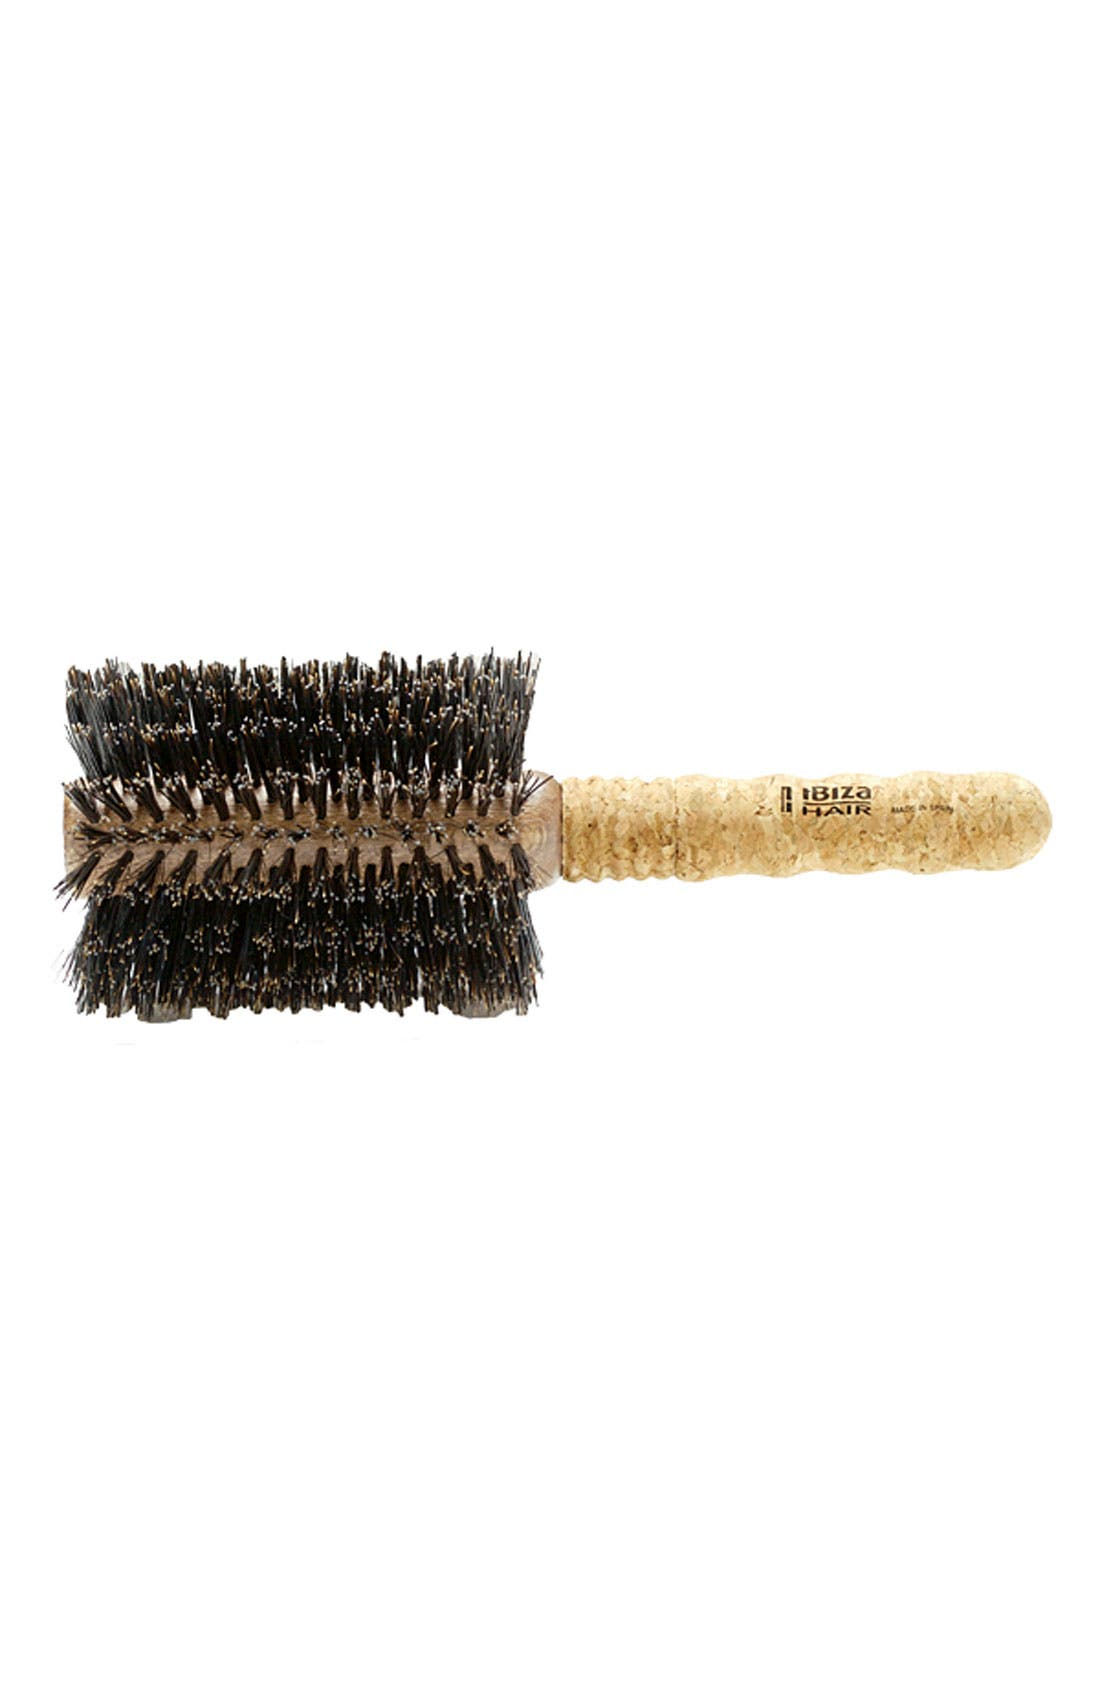 Alternate Image 1 Selected - Ibiza Collection Extended Cork Round Brush (Extra Large)